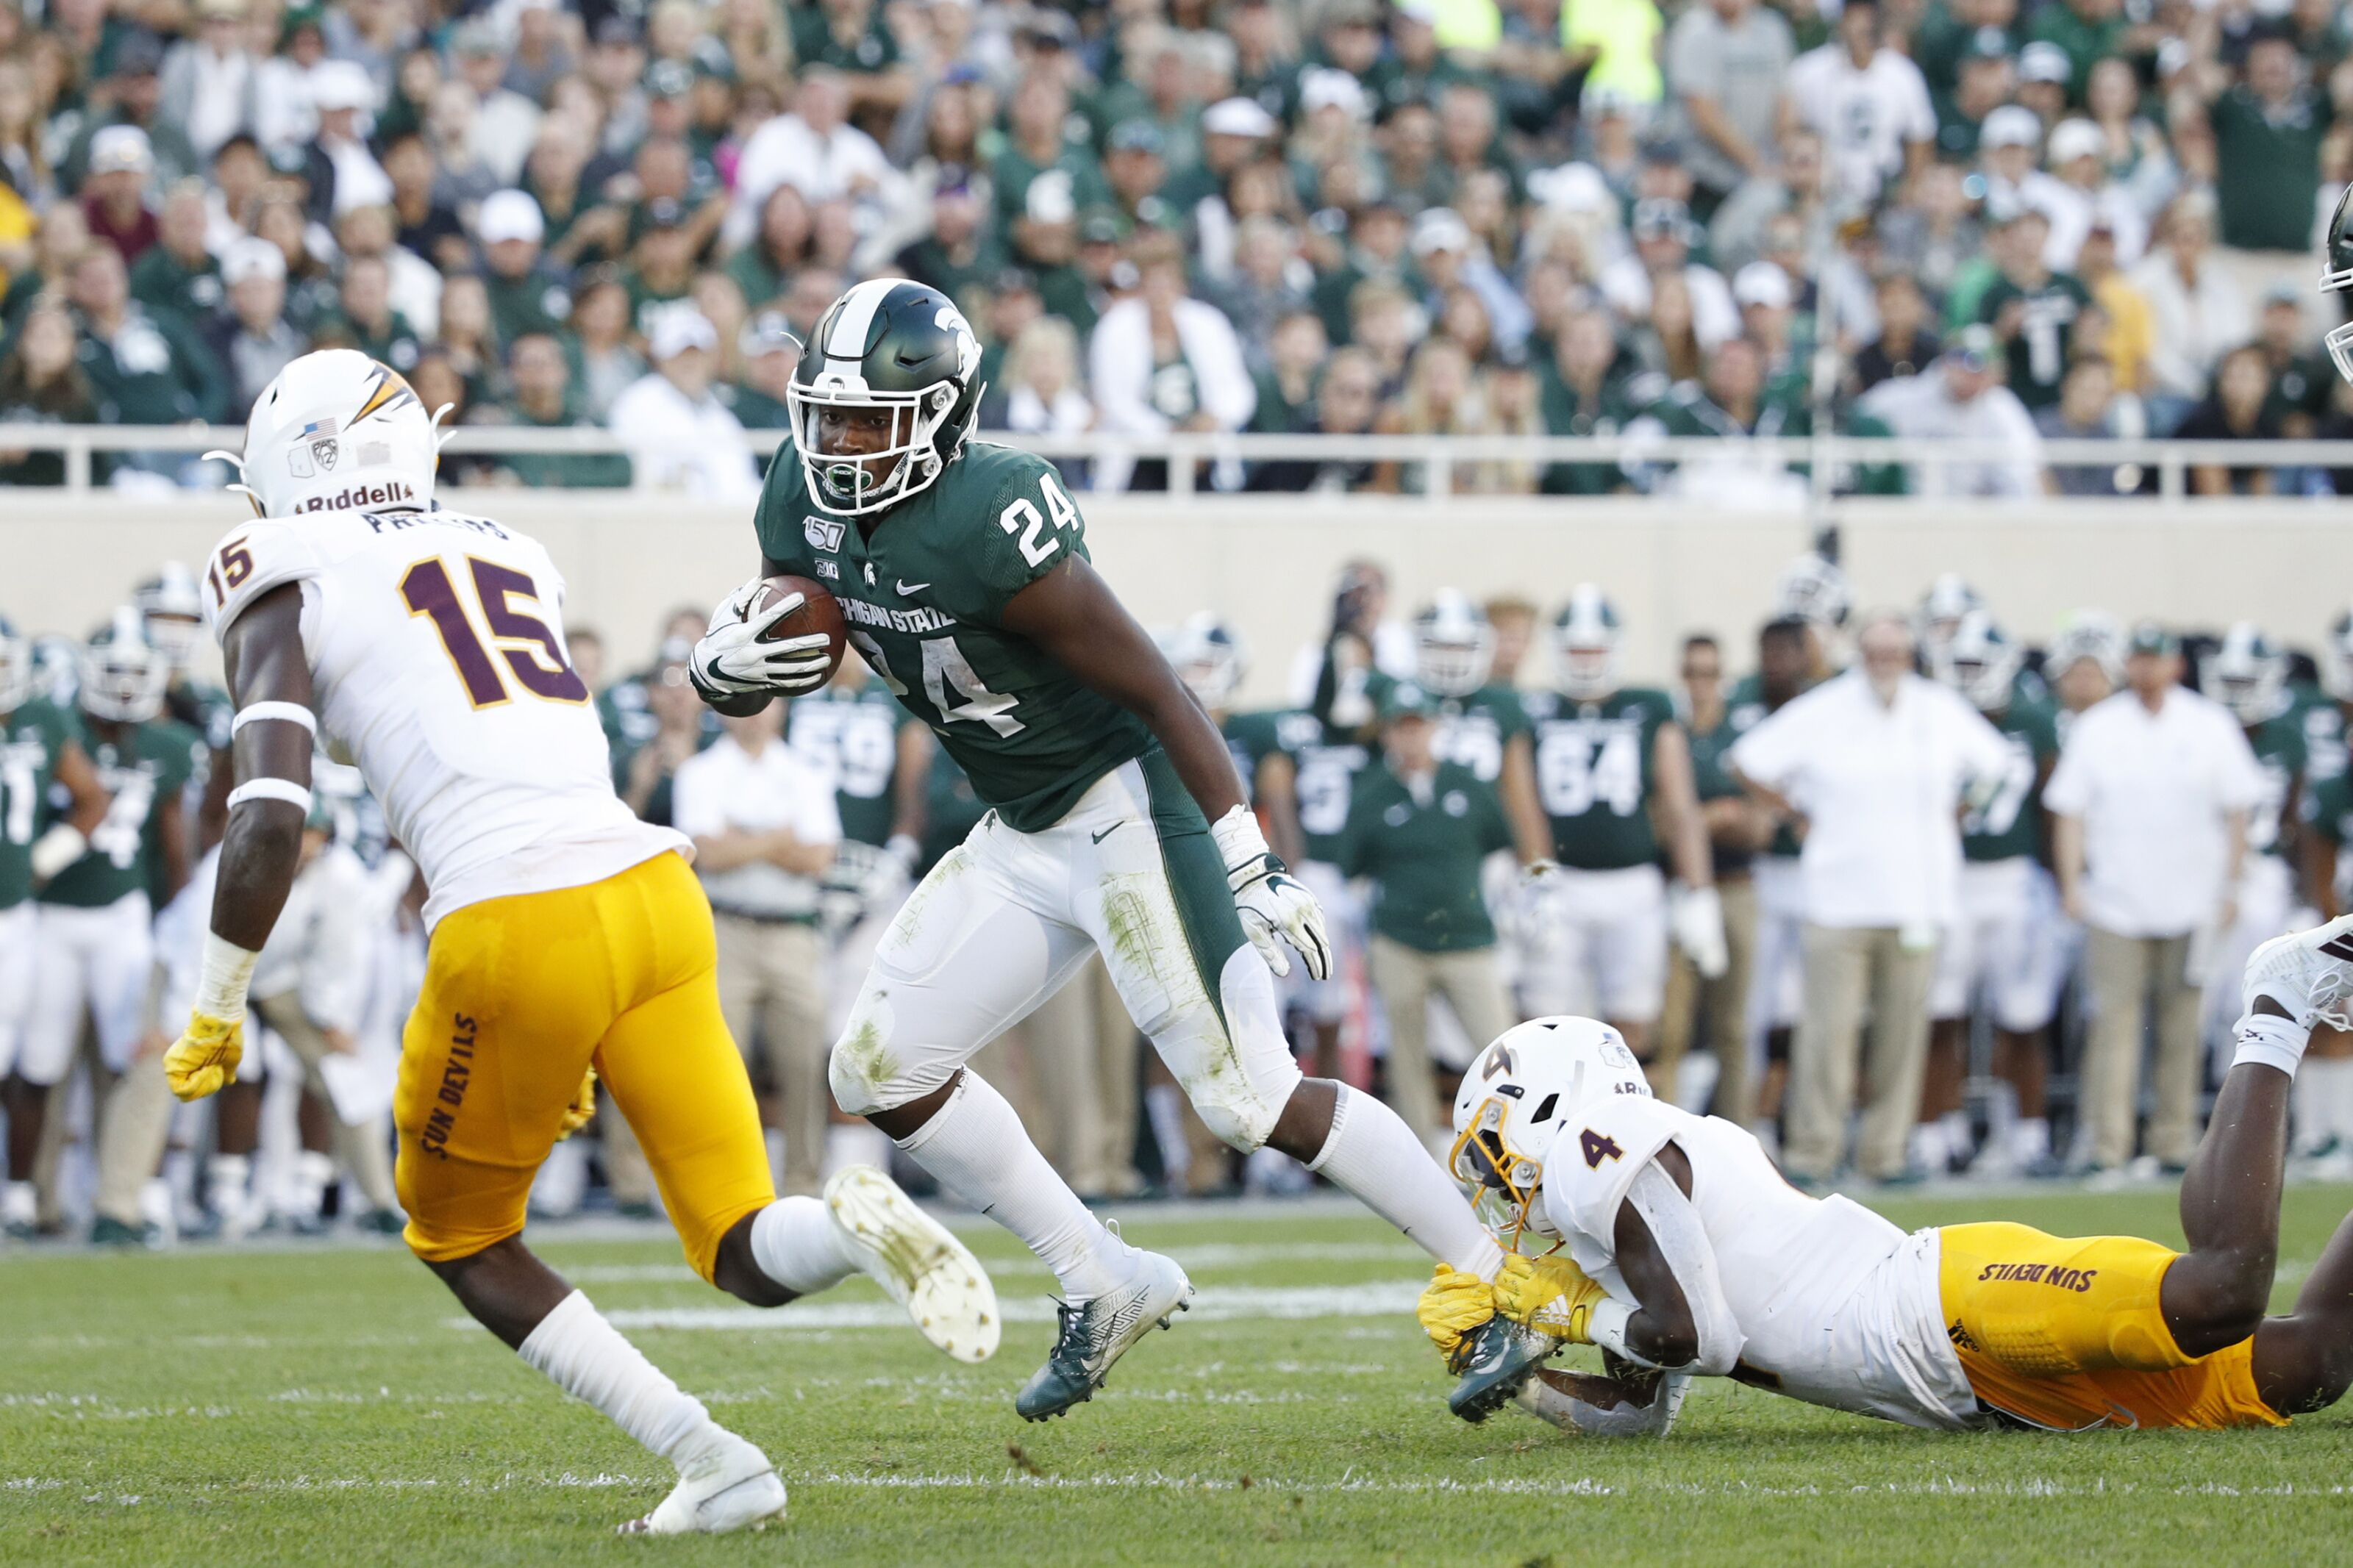 Michigan State Football Mailbag: What are reasonable expectations moving forward?